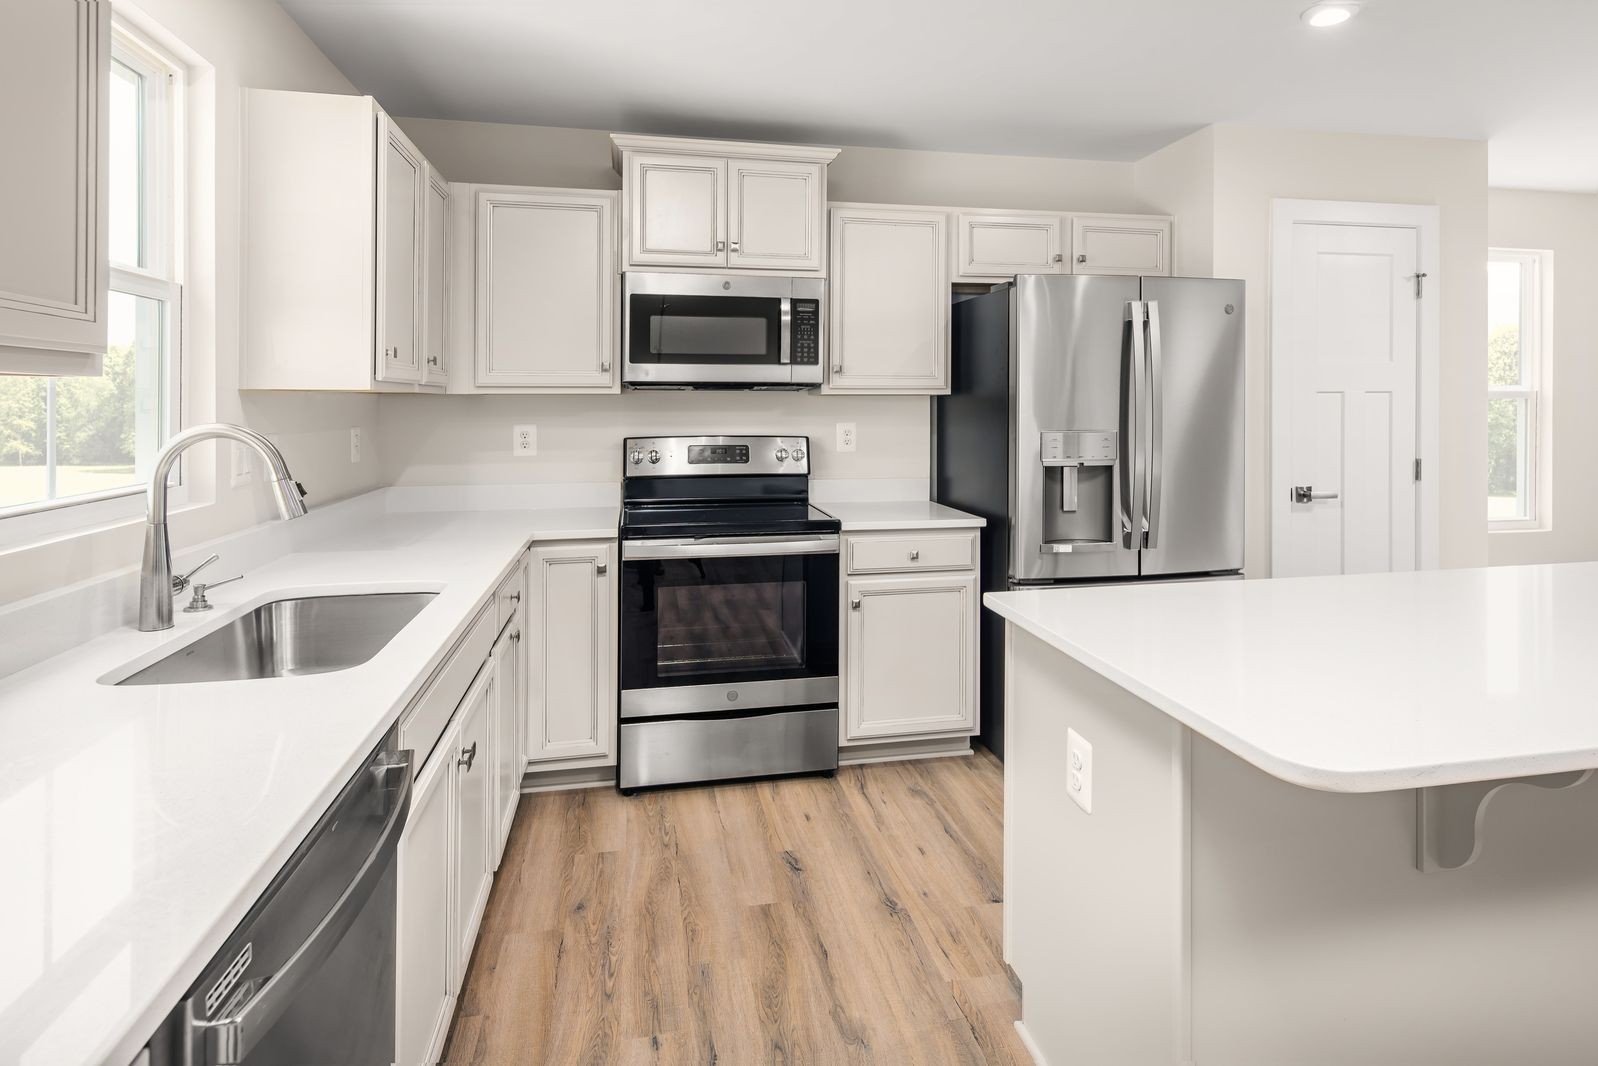 Kitchen featured in the Grand Cayman By Ryan Homes in Columbus, OH